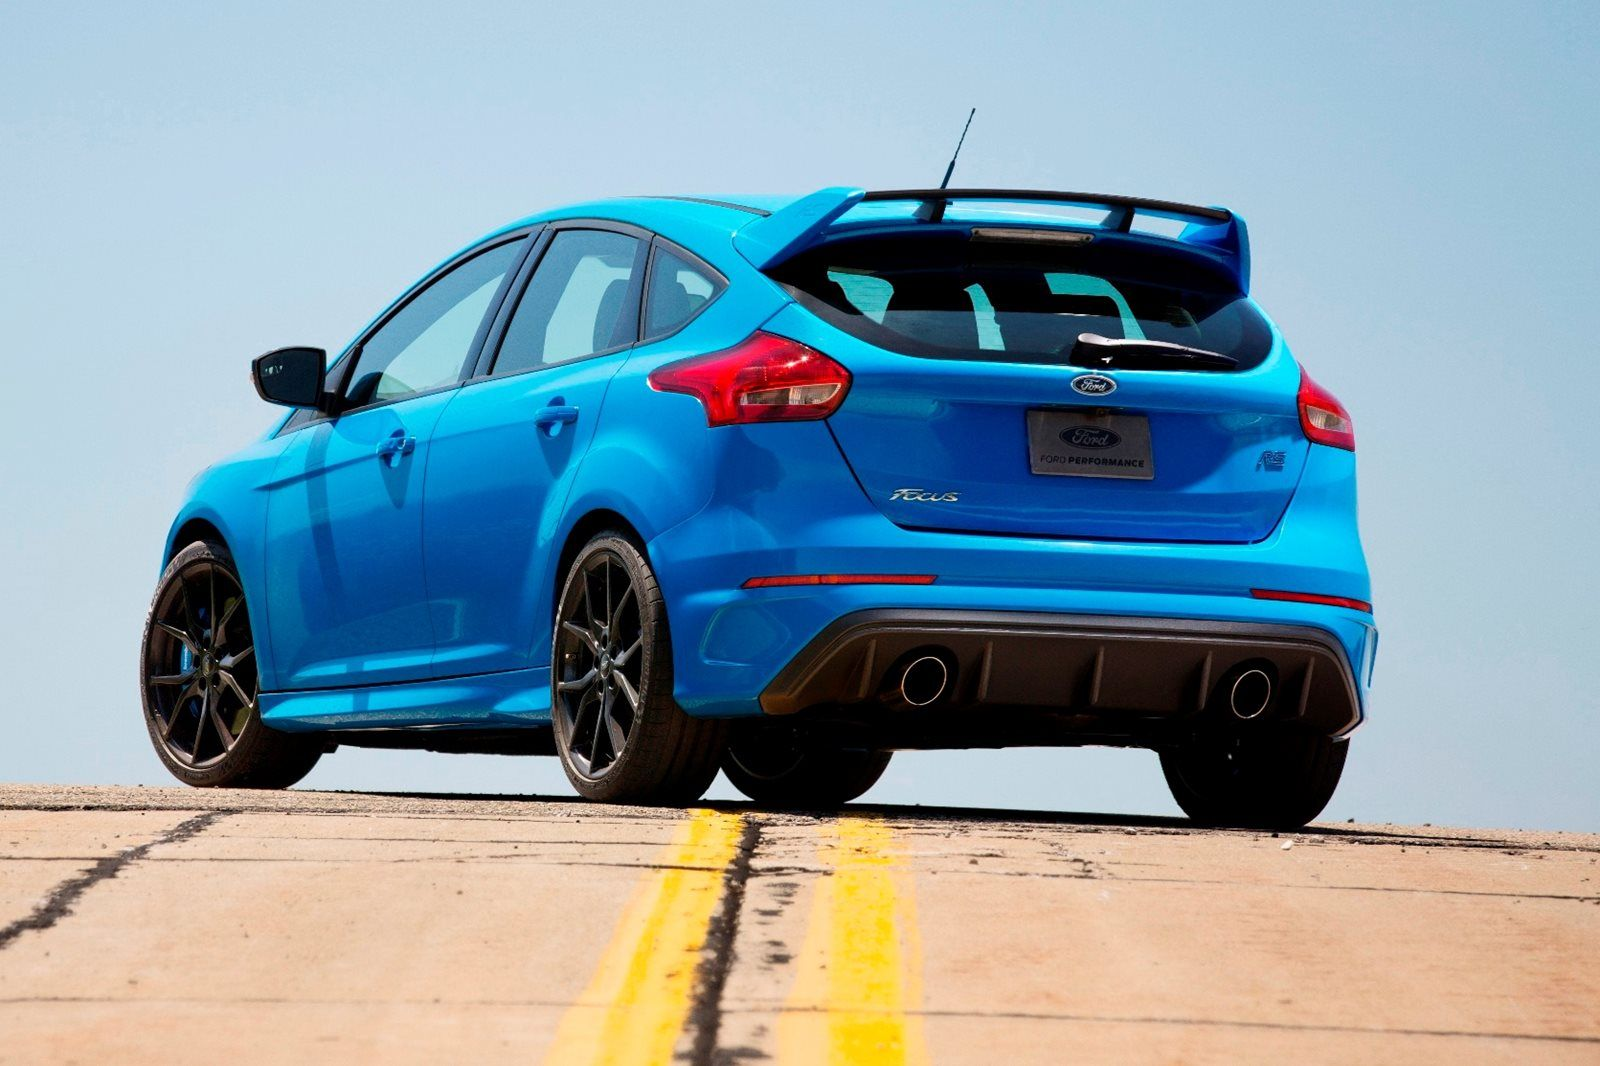 2018 Ford Focus Rs Review Trims Specs And Price Carbuzz In 2020 Ford Focus Rs Ford Focus Focus Rs